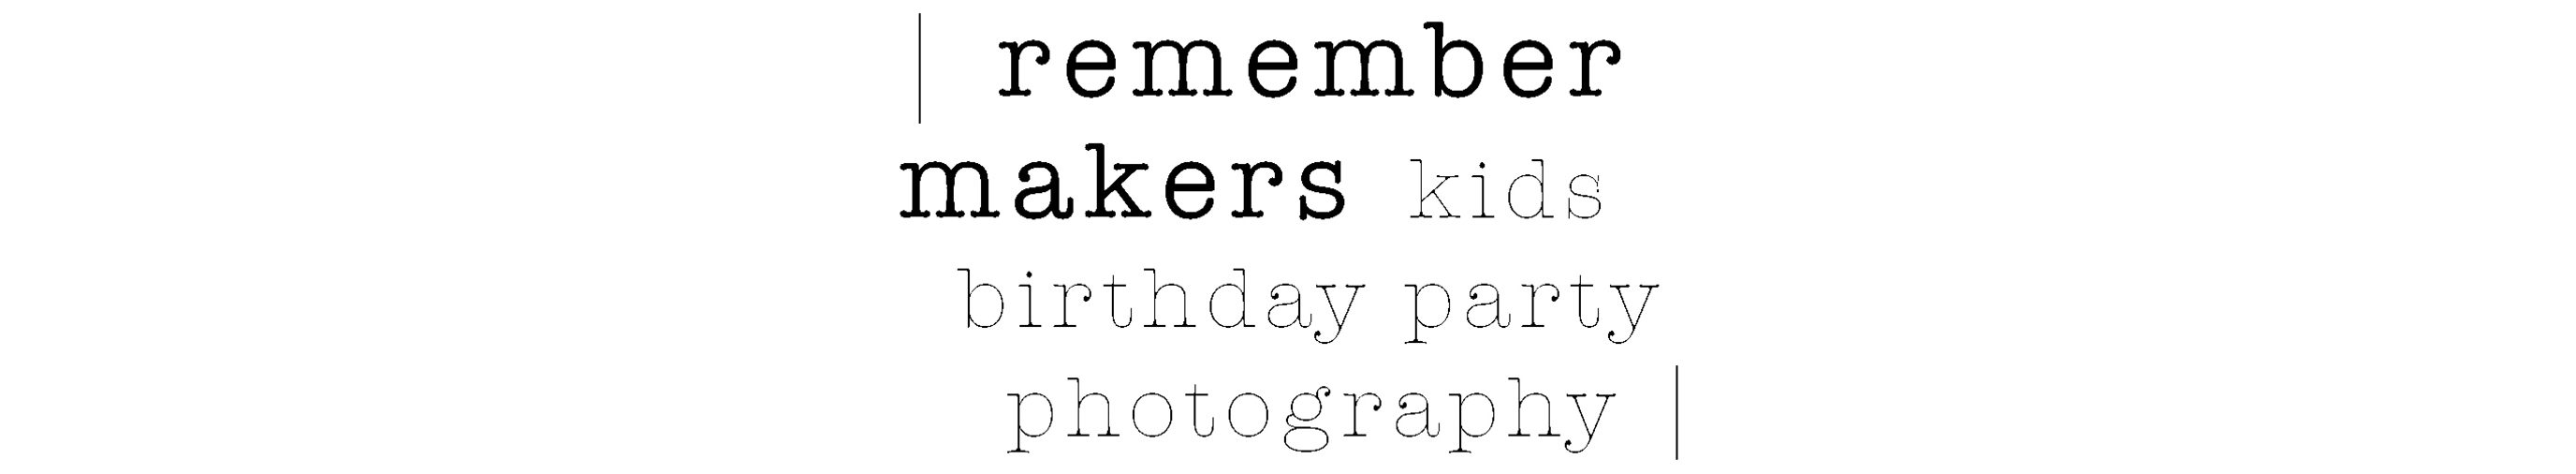 Kids Birthday Party Photography Los Angeles | Remember Makers